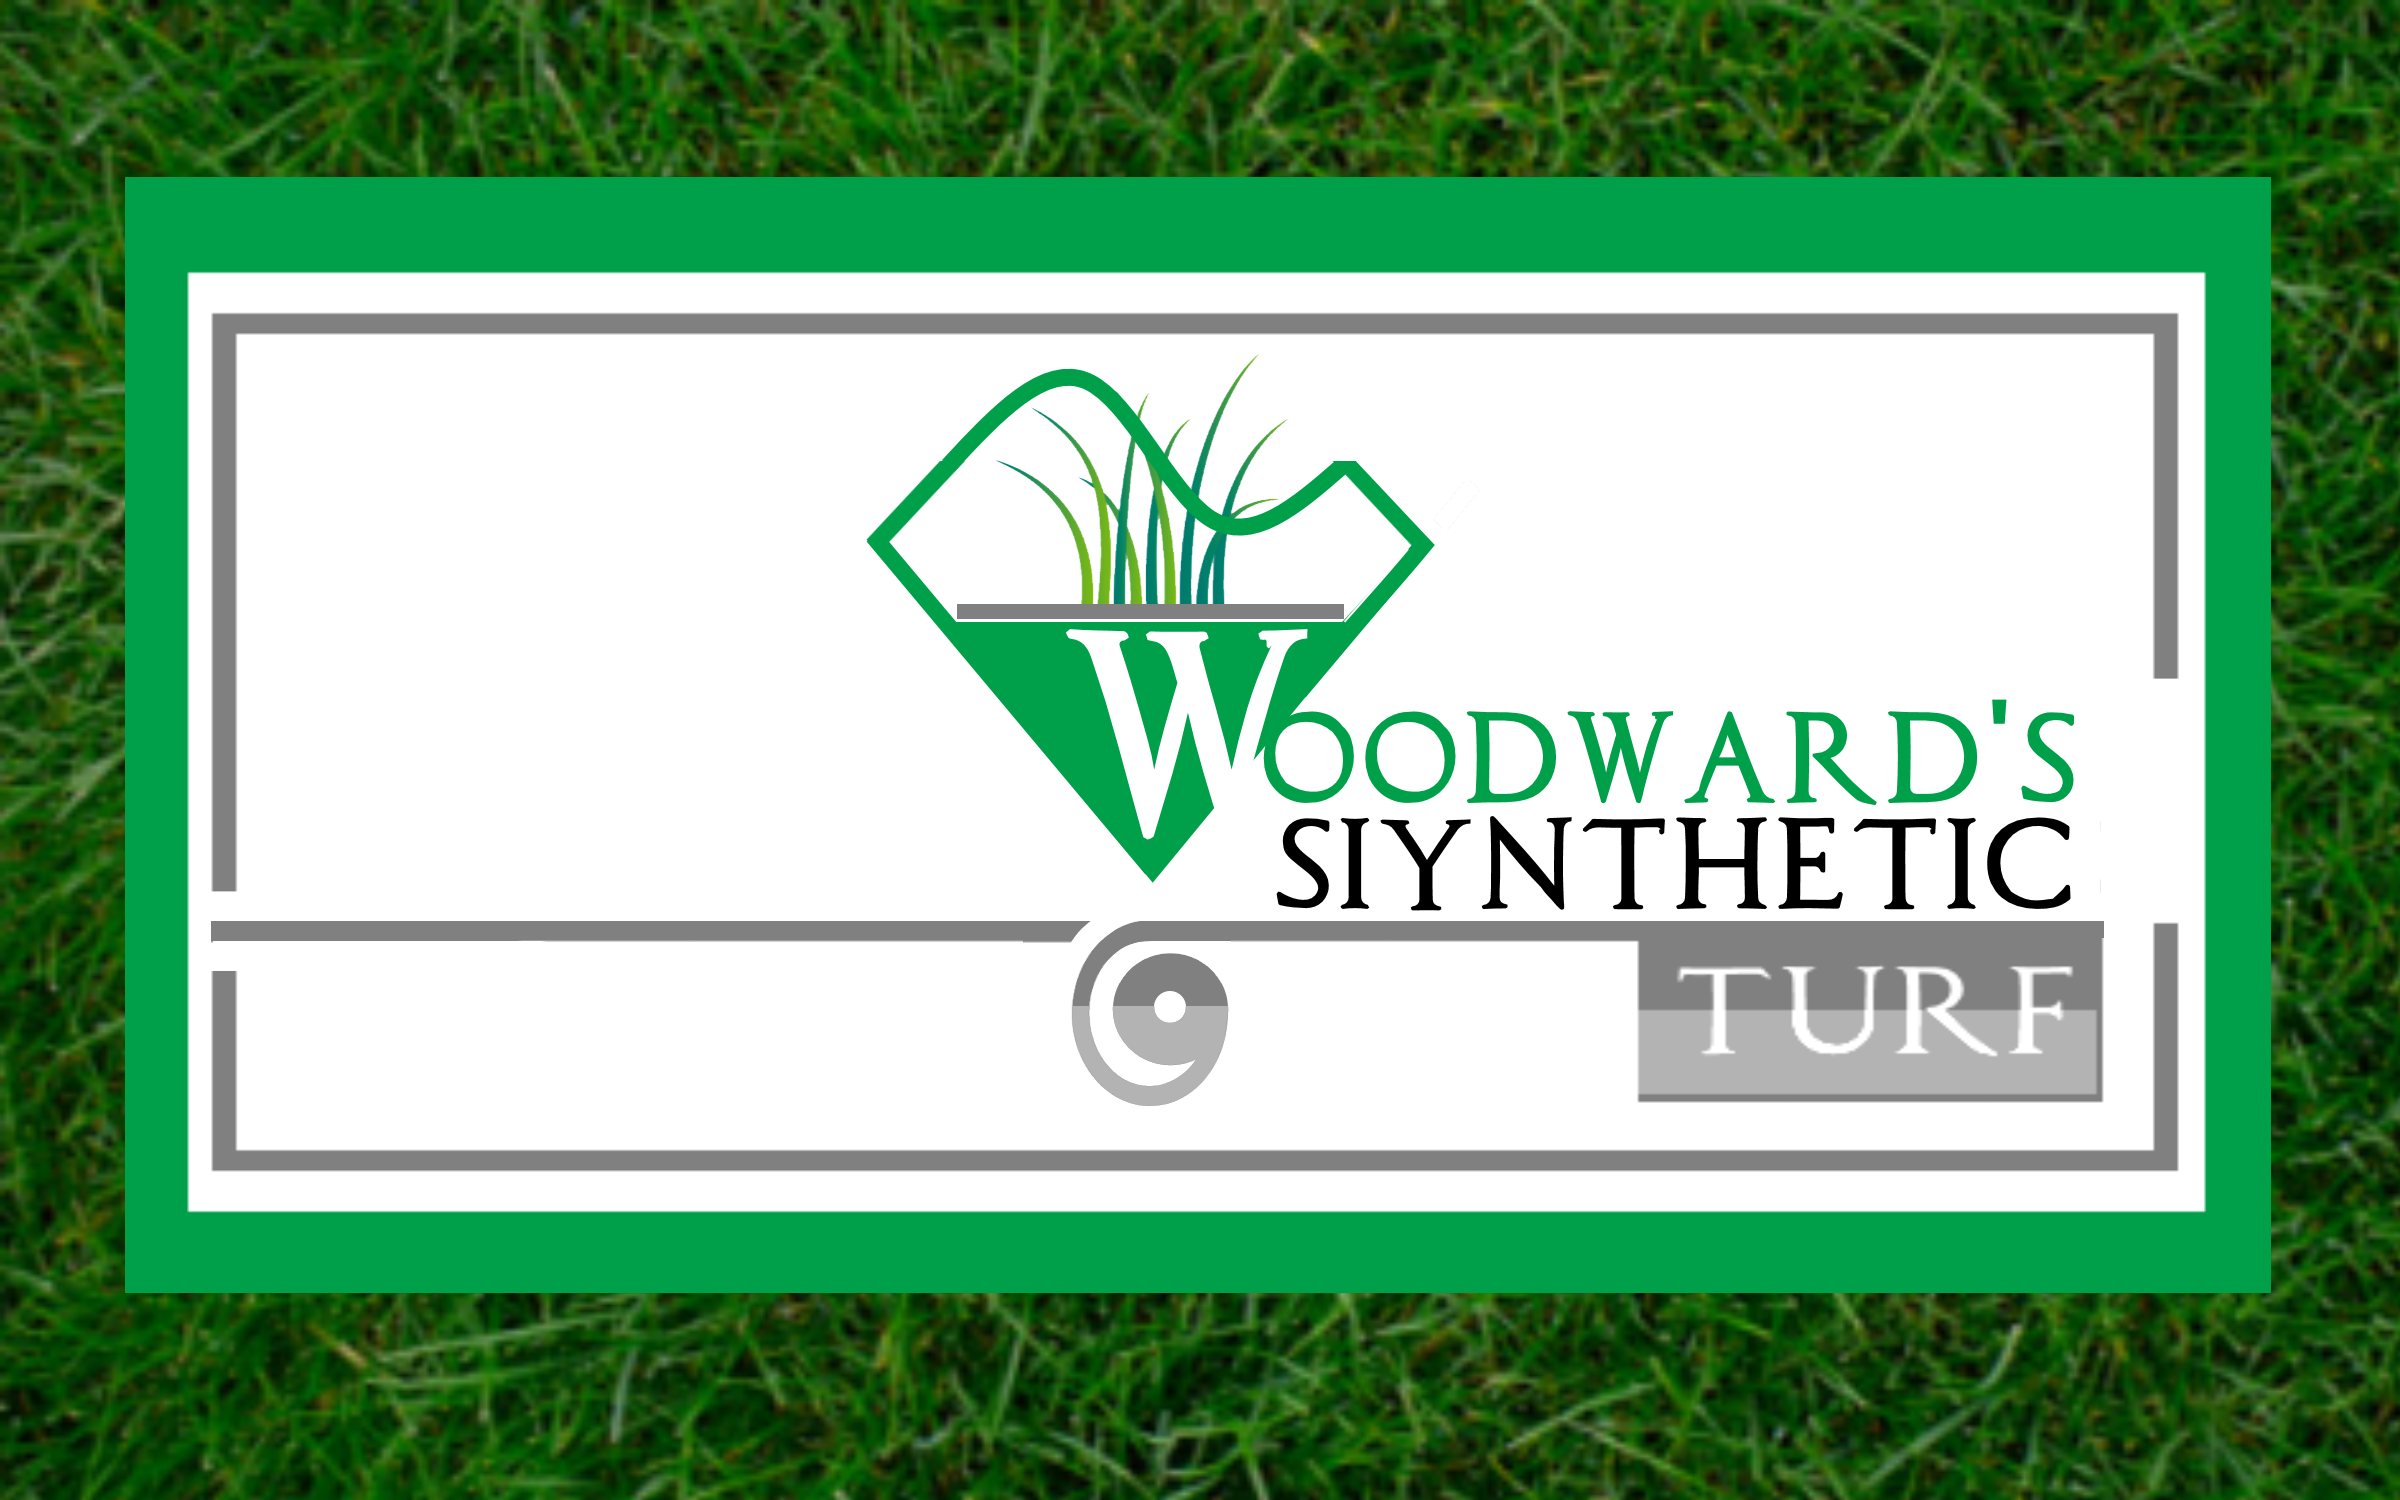 Logo Design by Roberto Bassi - Entry No. 84 in the Logo Design Contest Artistic Logo Design for Woodward's Synthetic Turf.